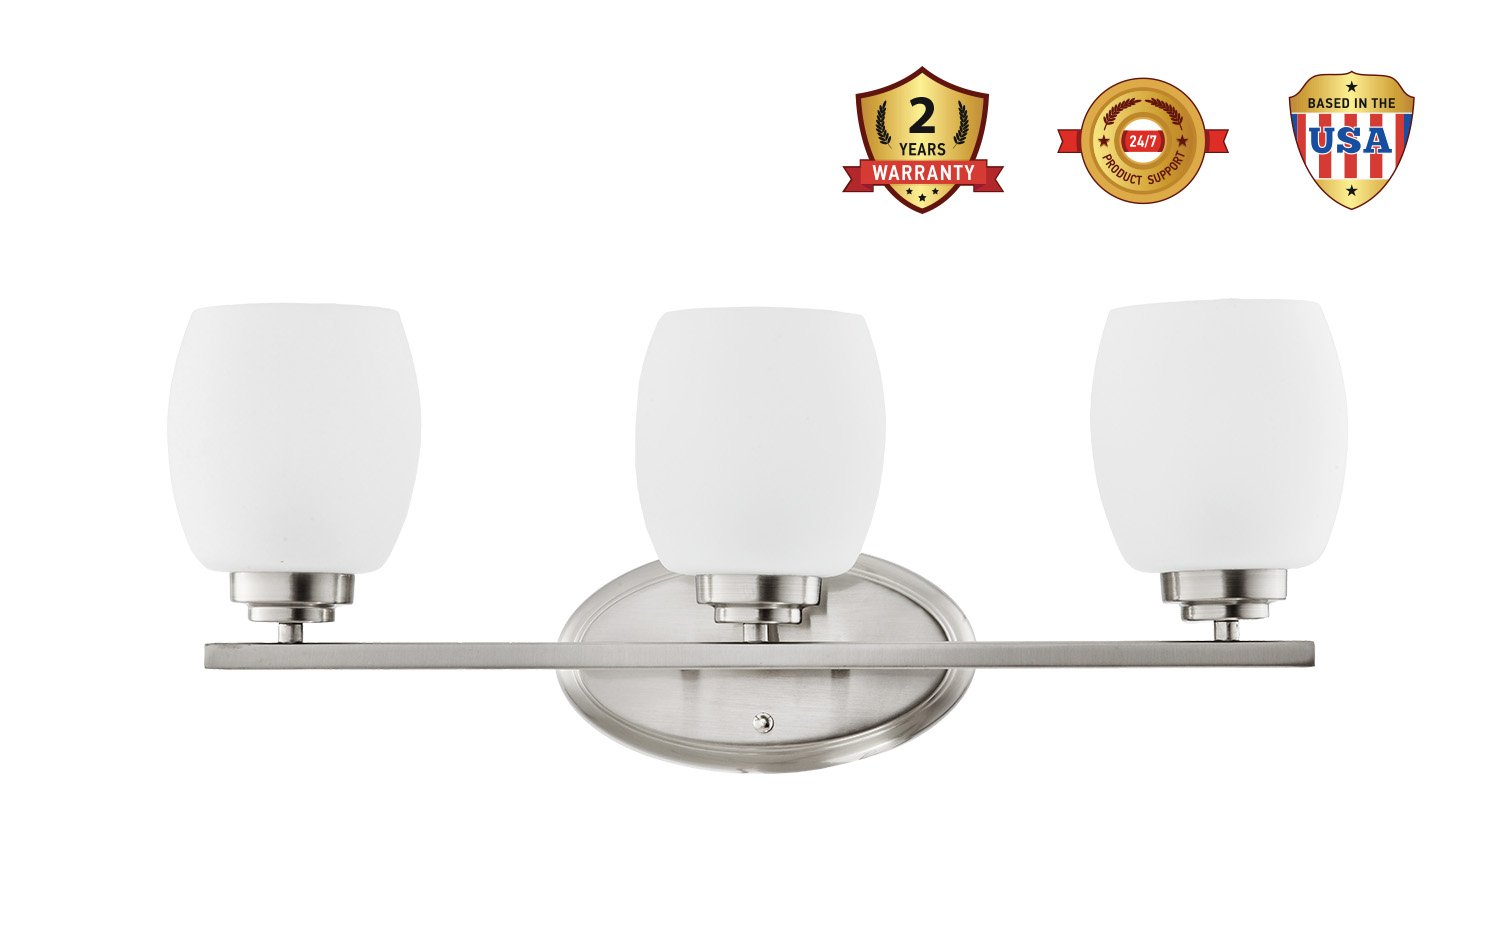 Interior Bathroom Vanity Wall Lighting Fixture VF38 Brushed Nickel Finish with Etched Glass Shade 3x60 Watt E26 Socket IN HOME 3-Light Bath Bar Light Up or Down UL Listed